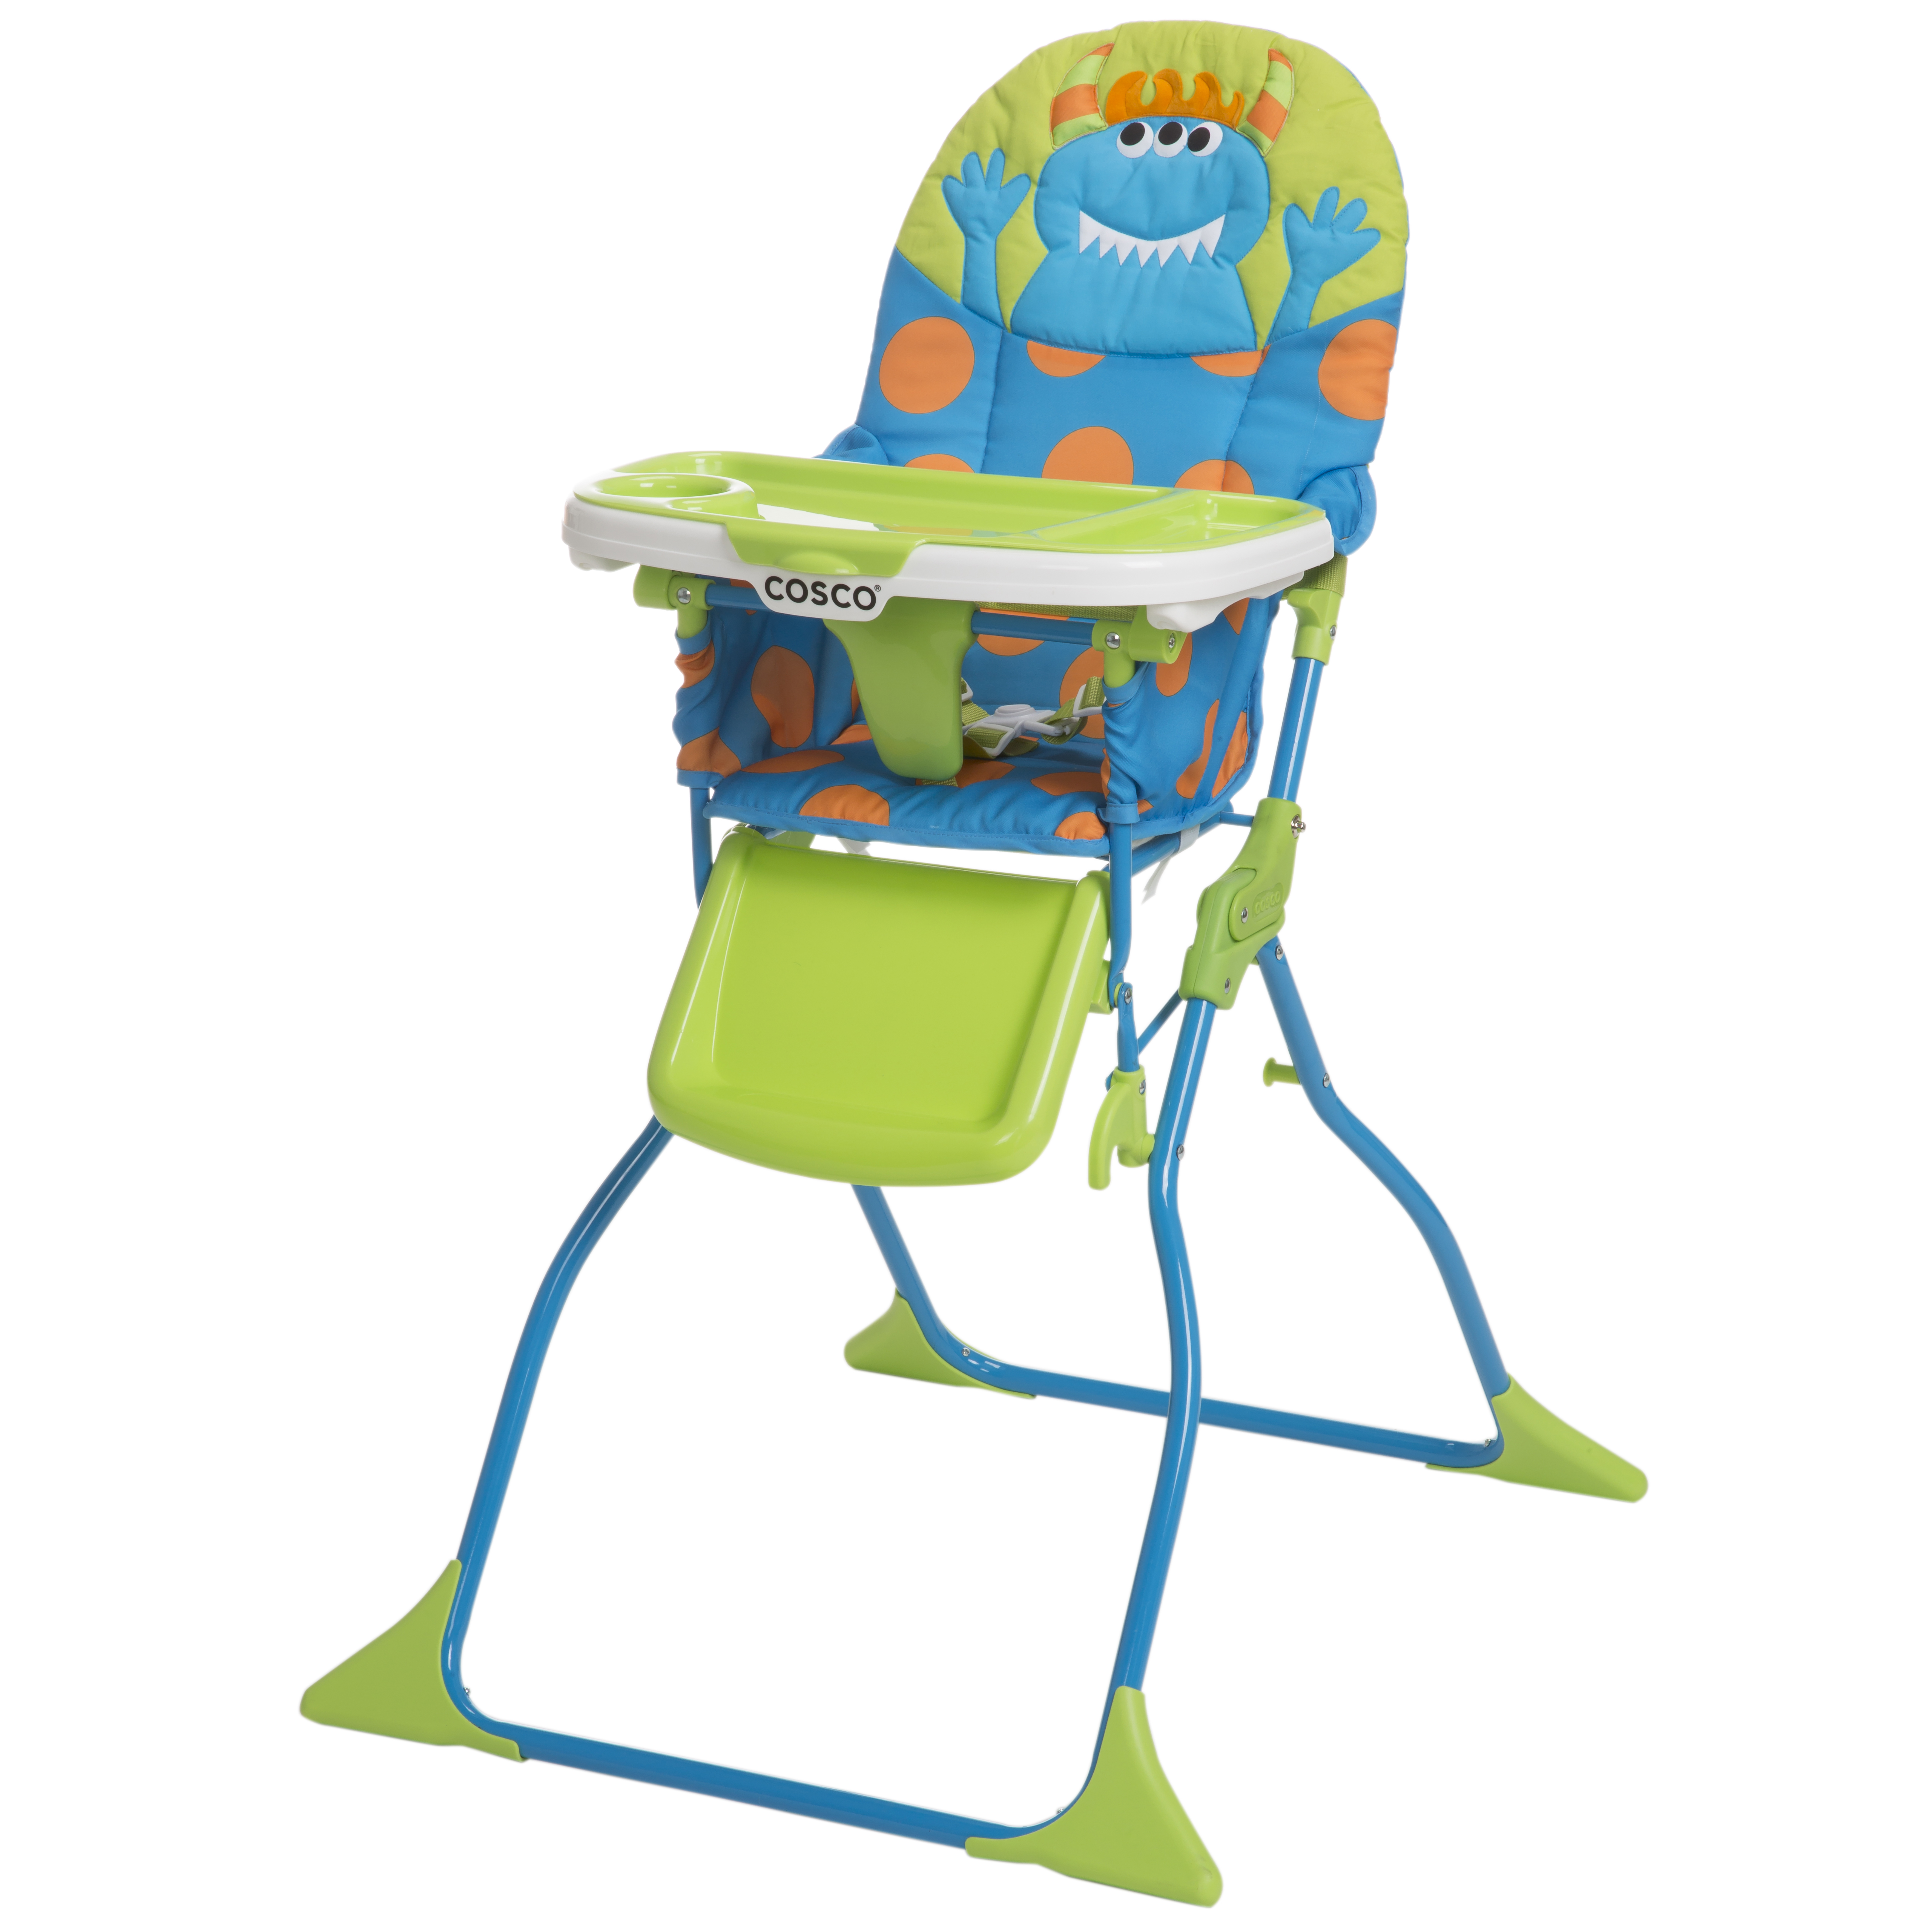 cosco high chair cover rubber glides chairs boosters kmart simple fold deluxe monster syd